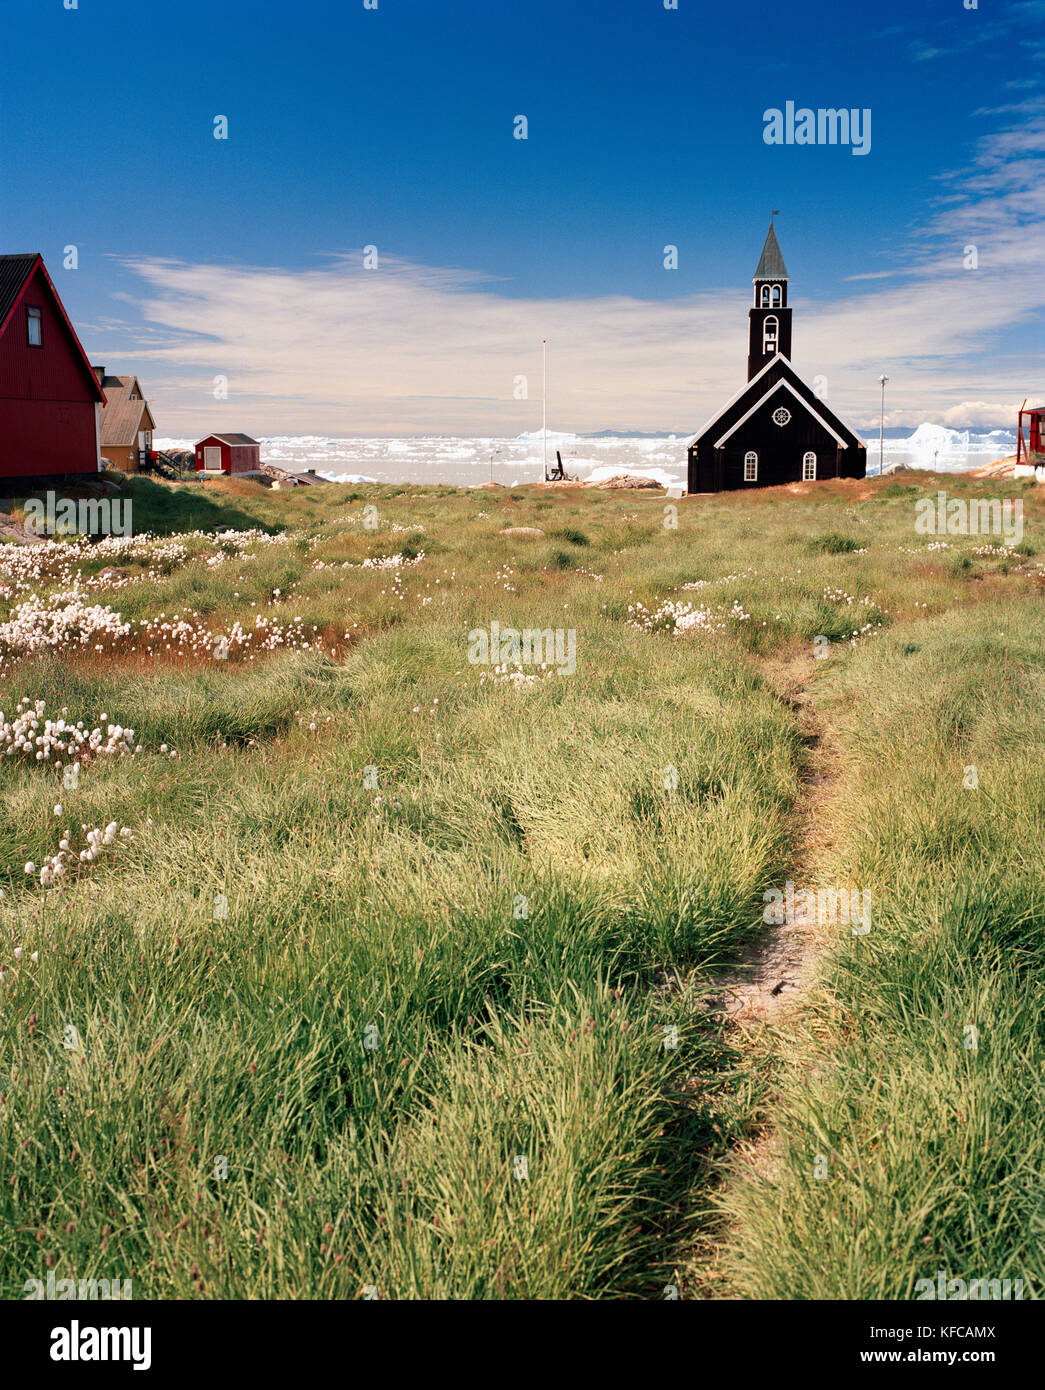 GREENLAND, Ilulissat, Disco Bay, exterior of church with field - Stock Image